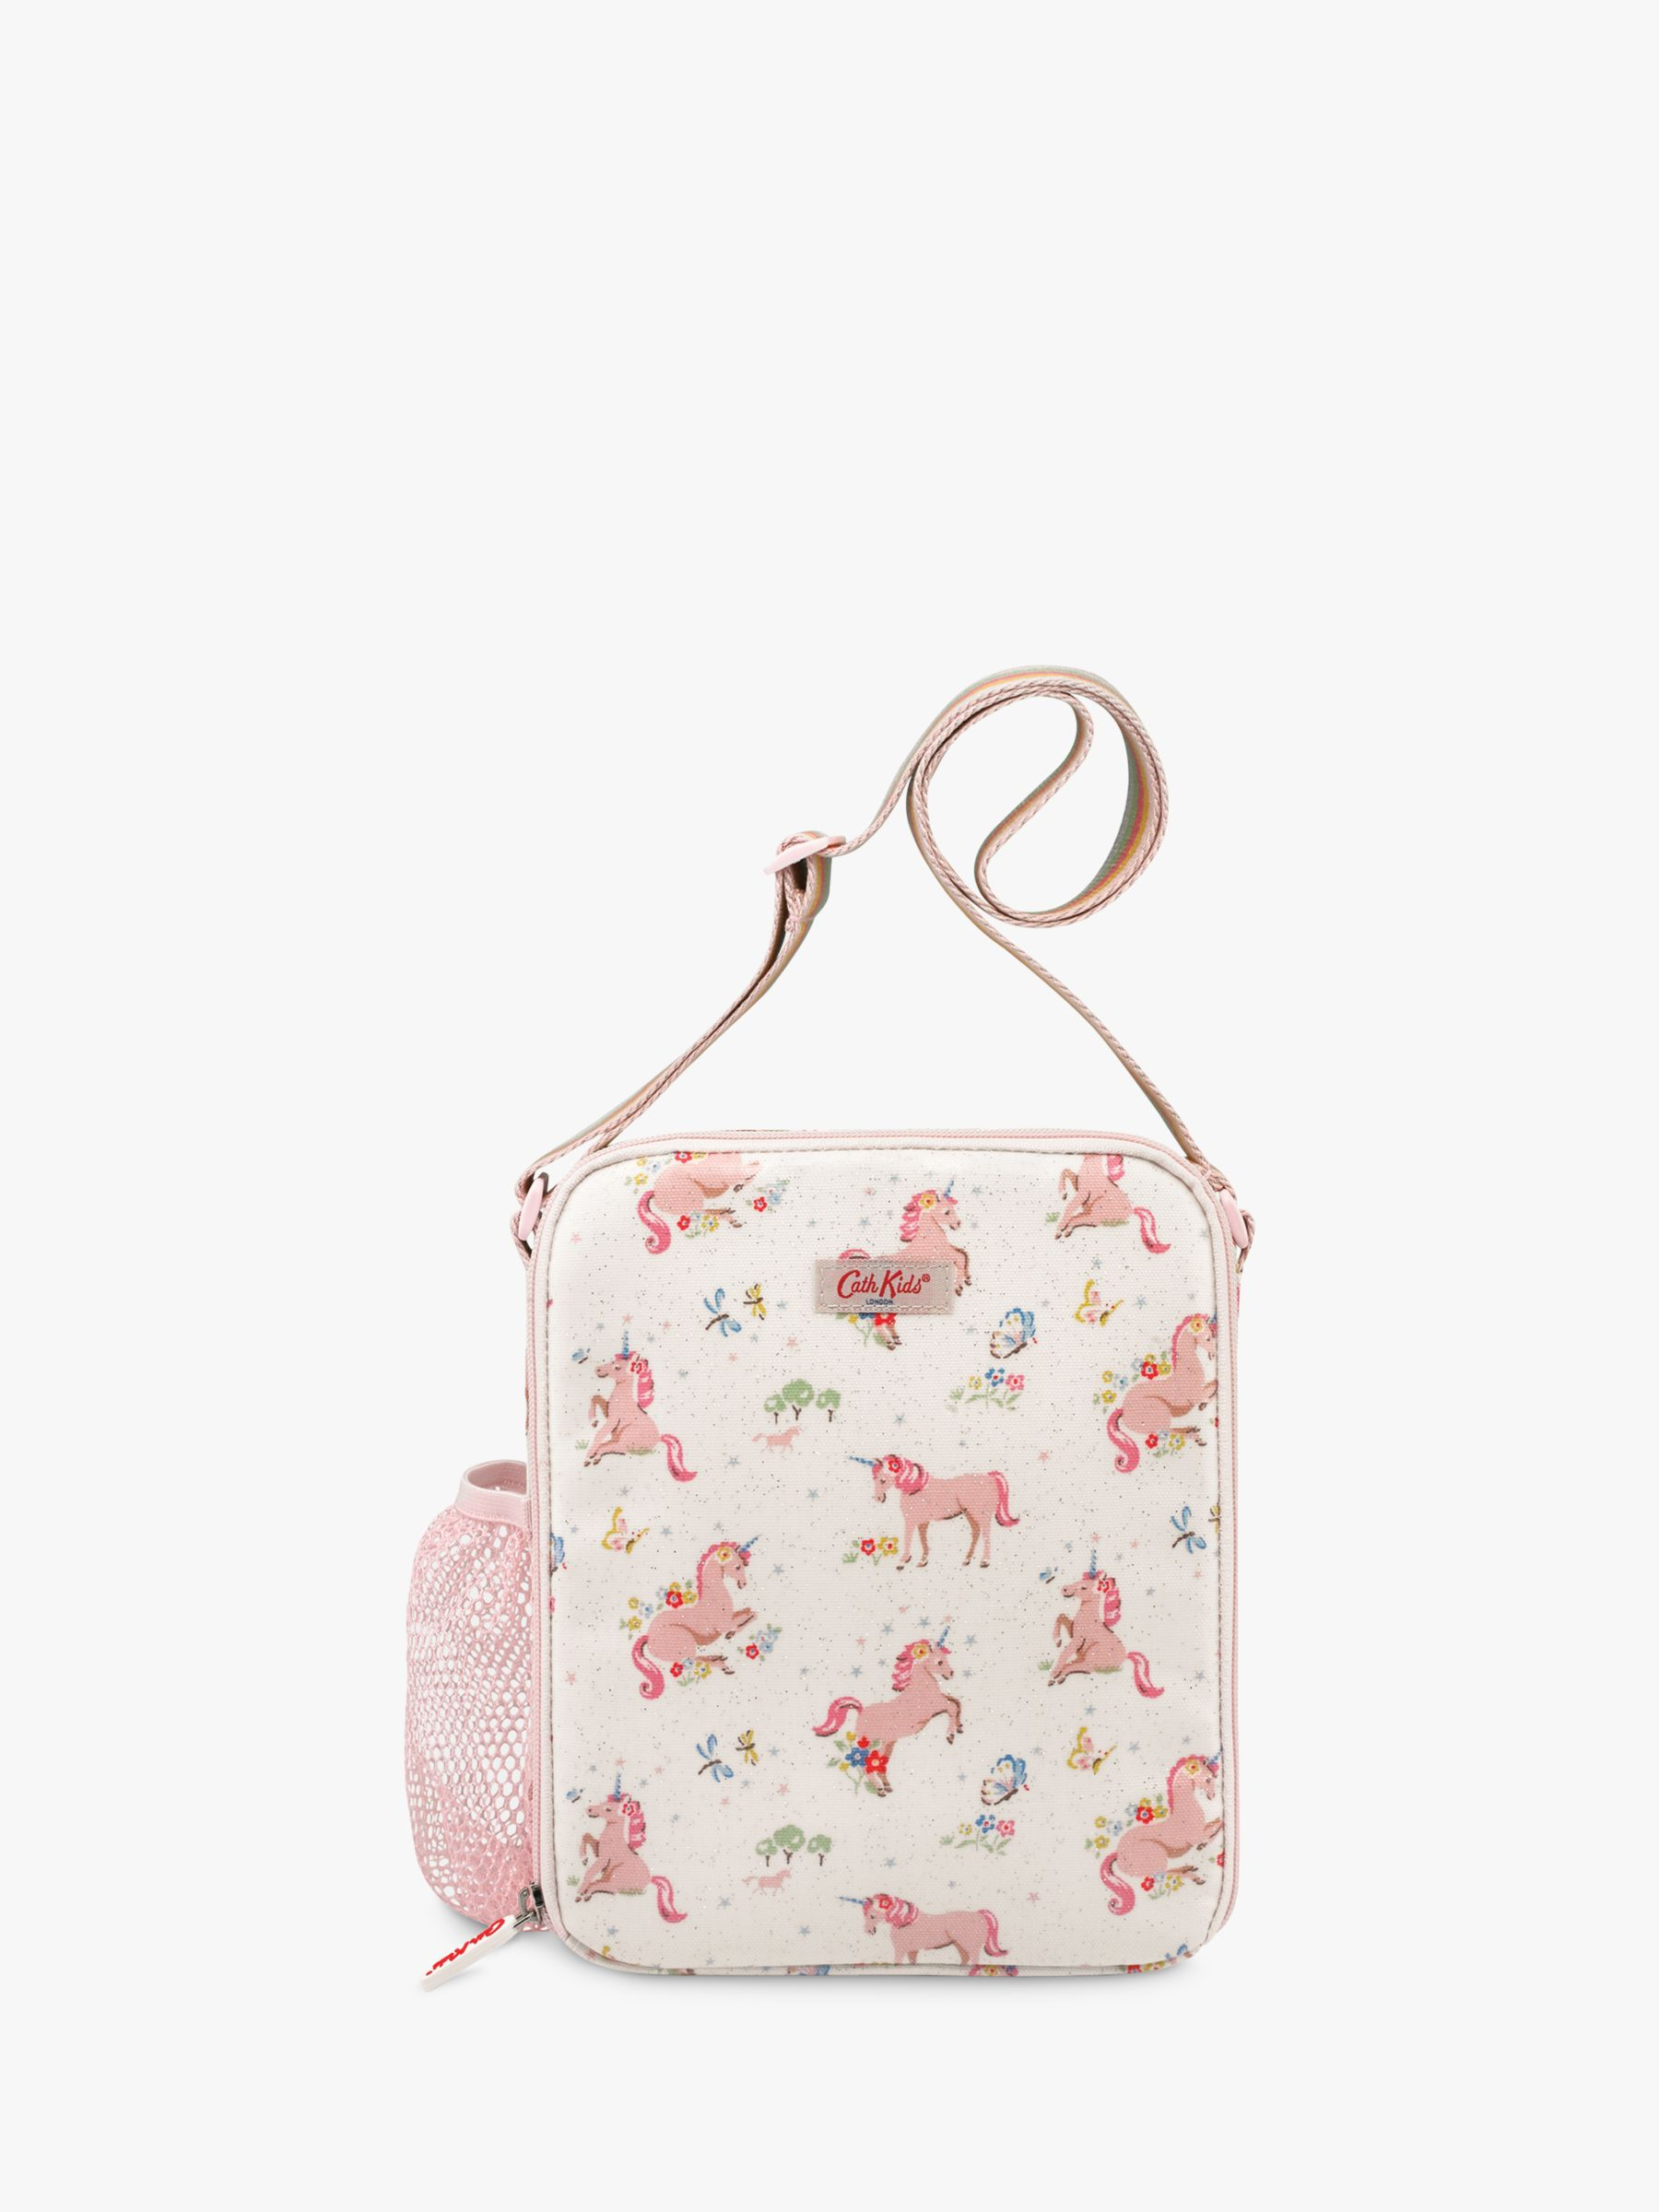 Cath Kidston Cath Kids Children's Unicorn Meadow Print Lunch Bag, Cream/Pink